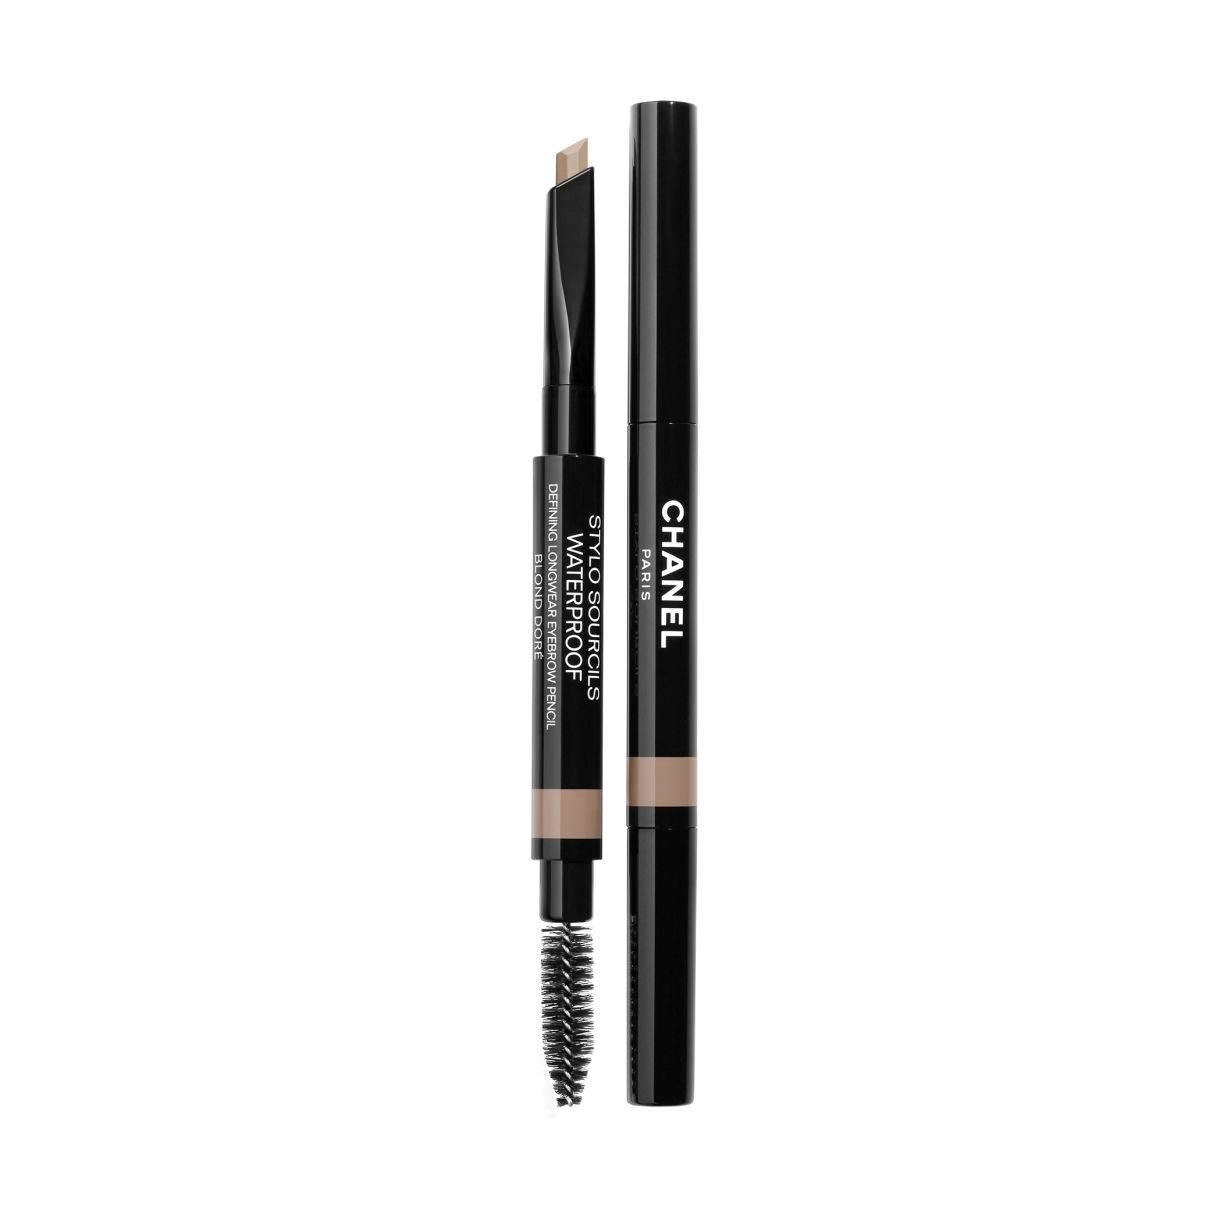 STYLO SOURCILS WATERPROOF TRWAŁA KREDKA DO BRWI